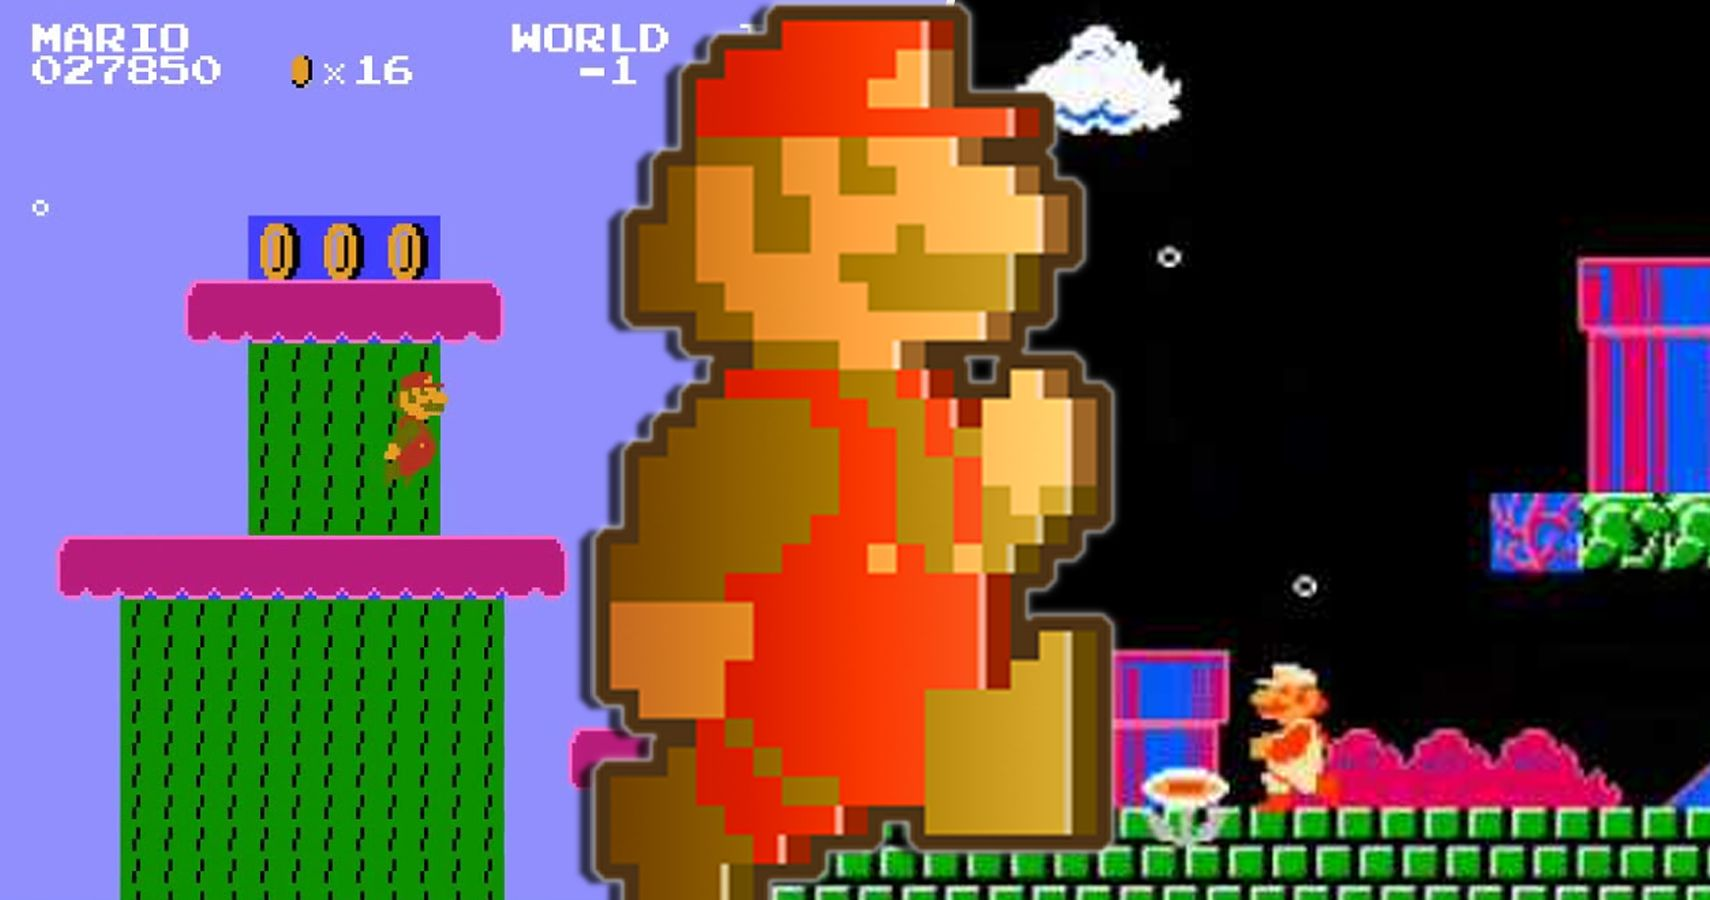 20 Hidden Details In The Original Super Mario Bros  That Only Super